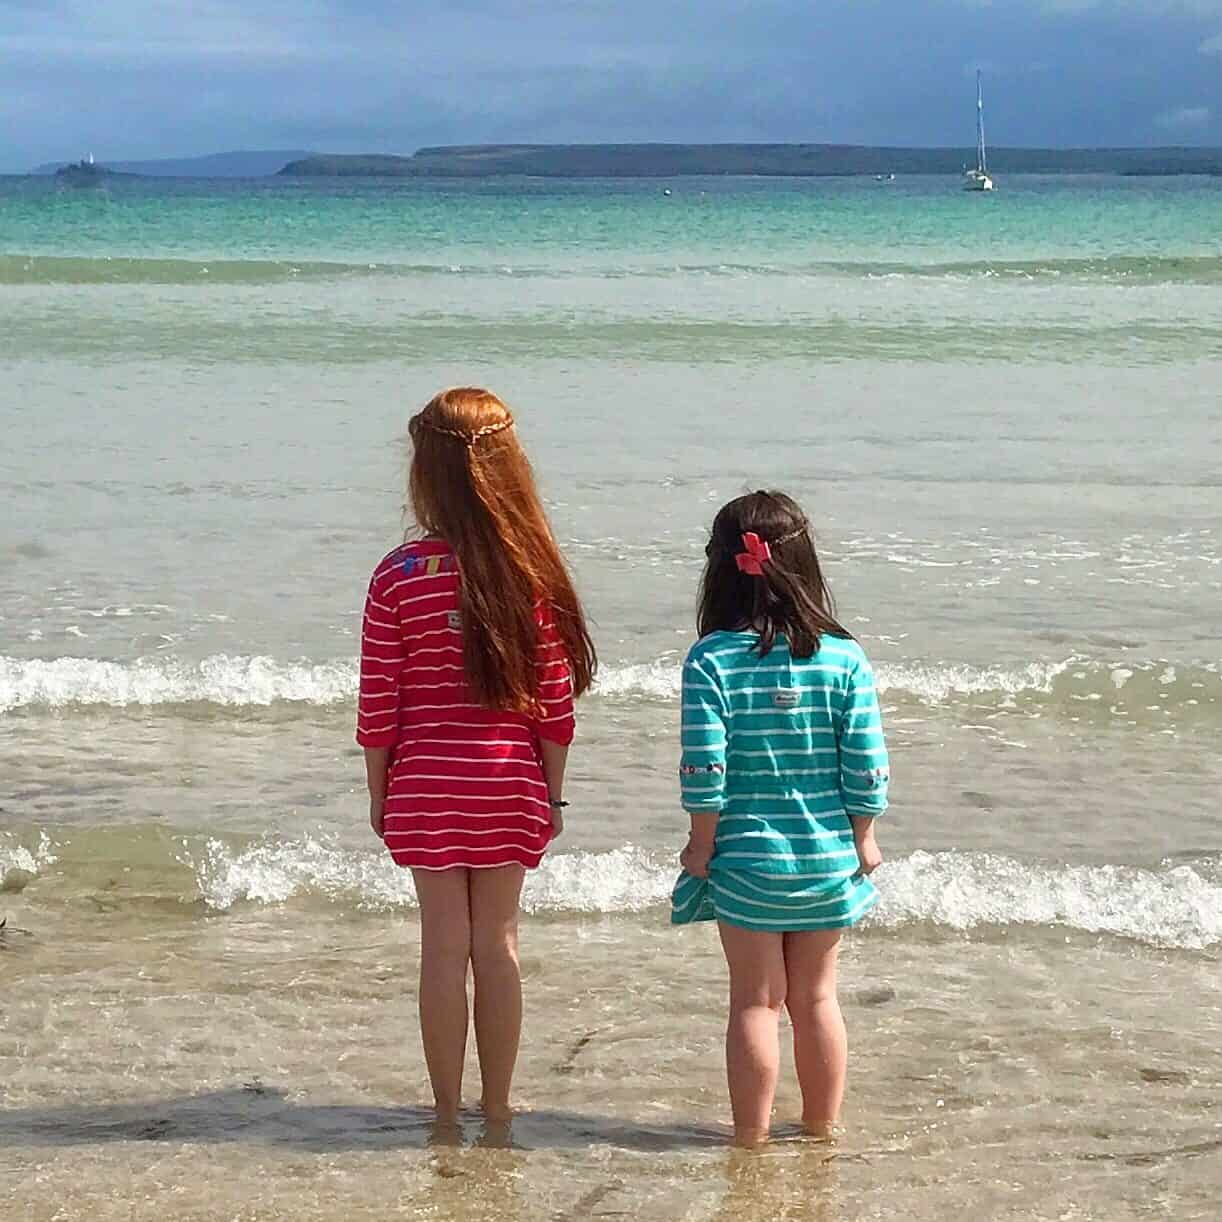 Watching the sea in St Ives